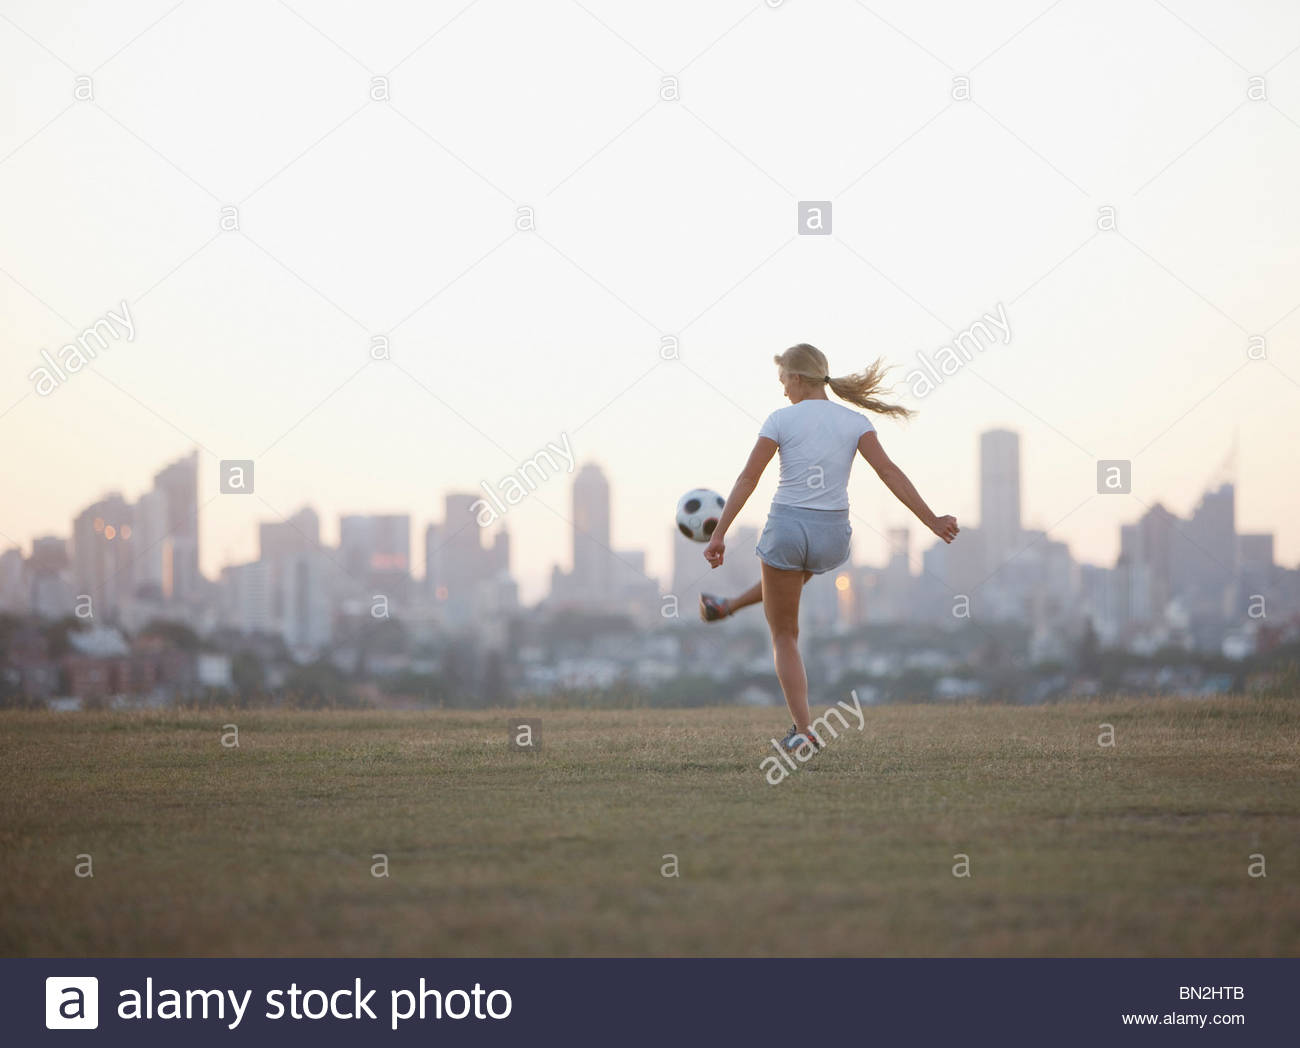 Woman kicking soccer ball in urban park - Stock Image